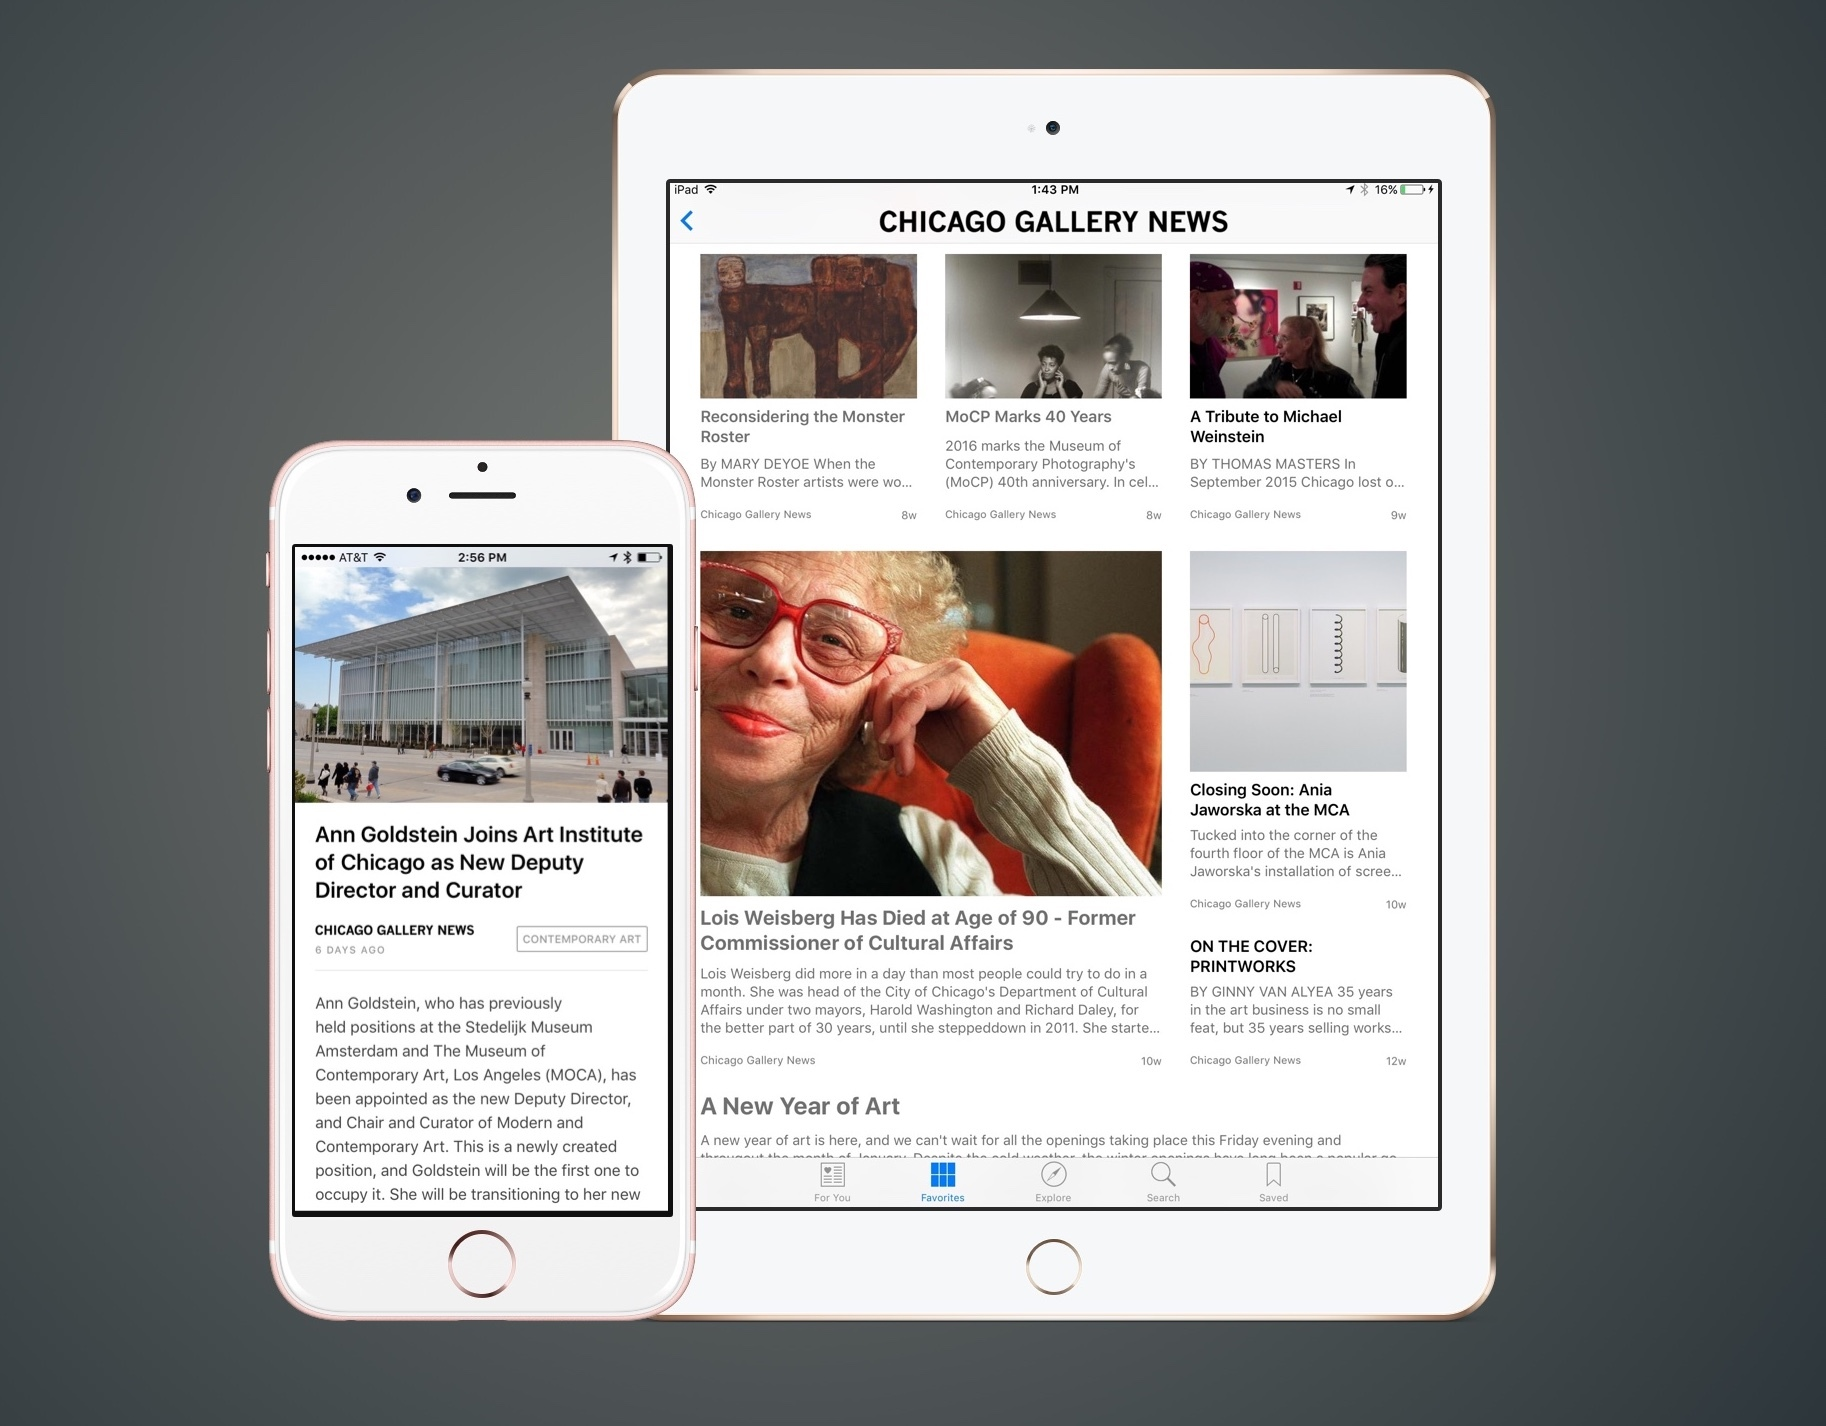 Chicago Gallery News publishes to Apple News